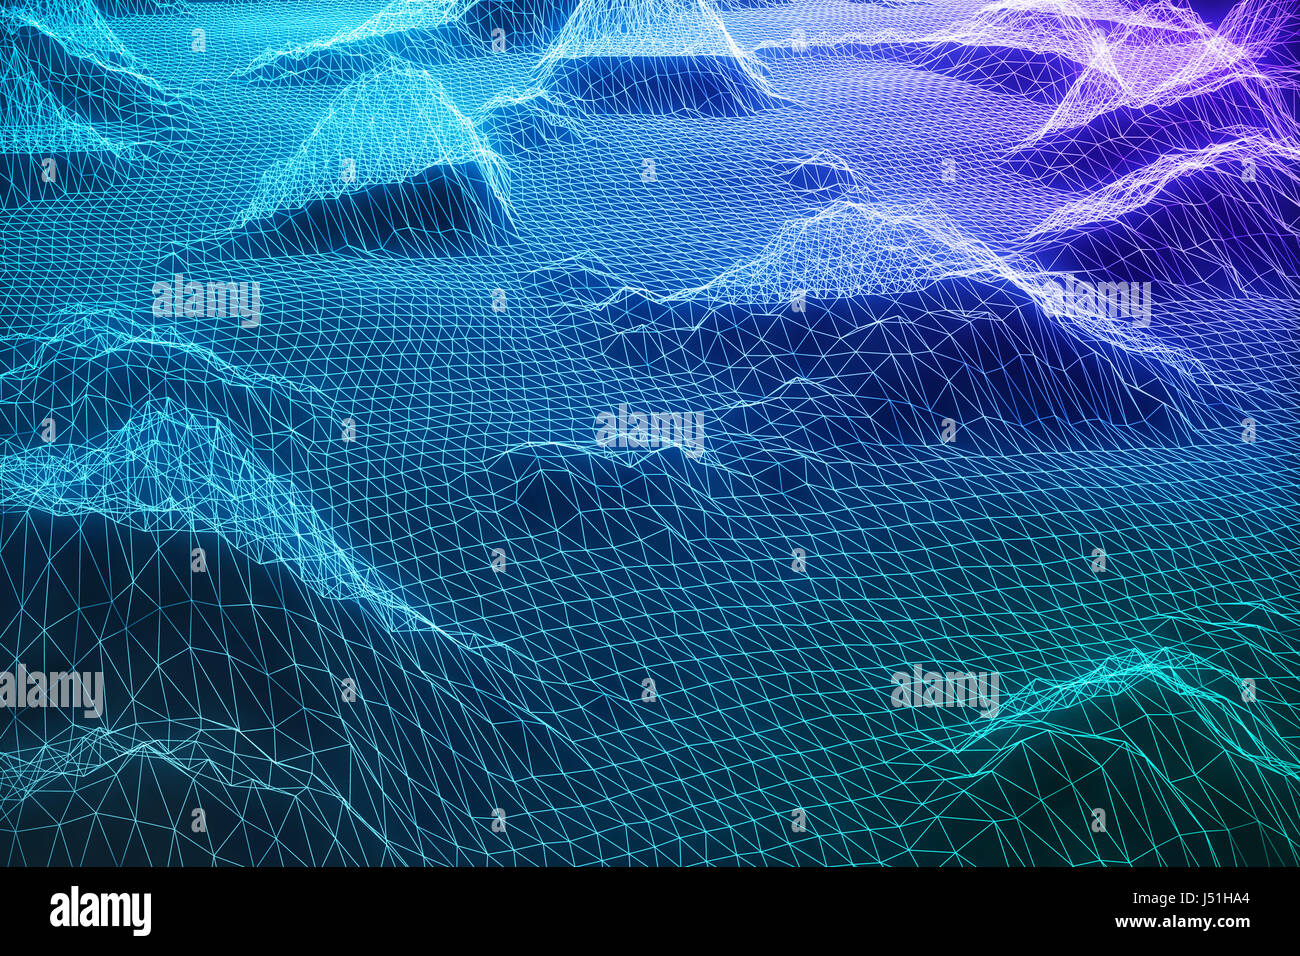 3D Illustration Abstract Digital Wireframe Landscape. Cyberspace Stock Photo: 140791788